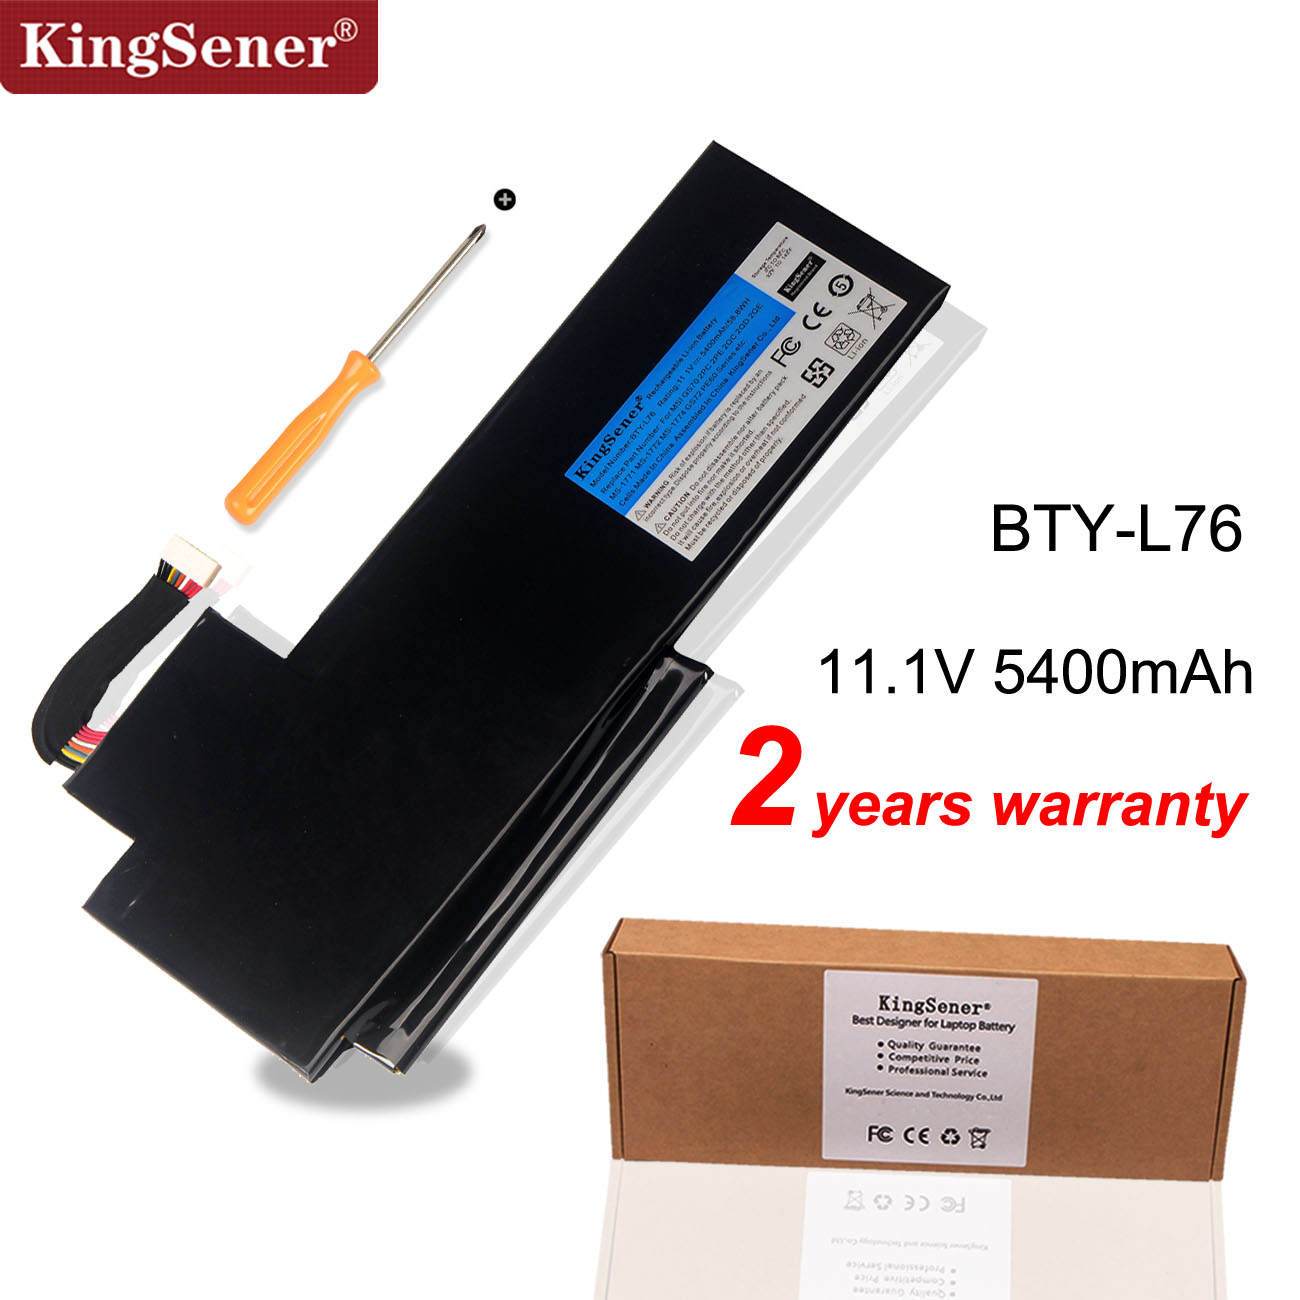 KingSener BTY-L76 Battery For MSI GS70 2OD 2PC 2PE 2QC 2QD 2QE GS72 MS-1771 MS-1772 MS-1773 MS-1774 For MEDION X7613 MD98802